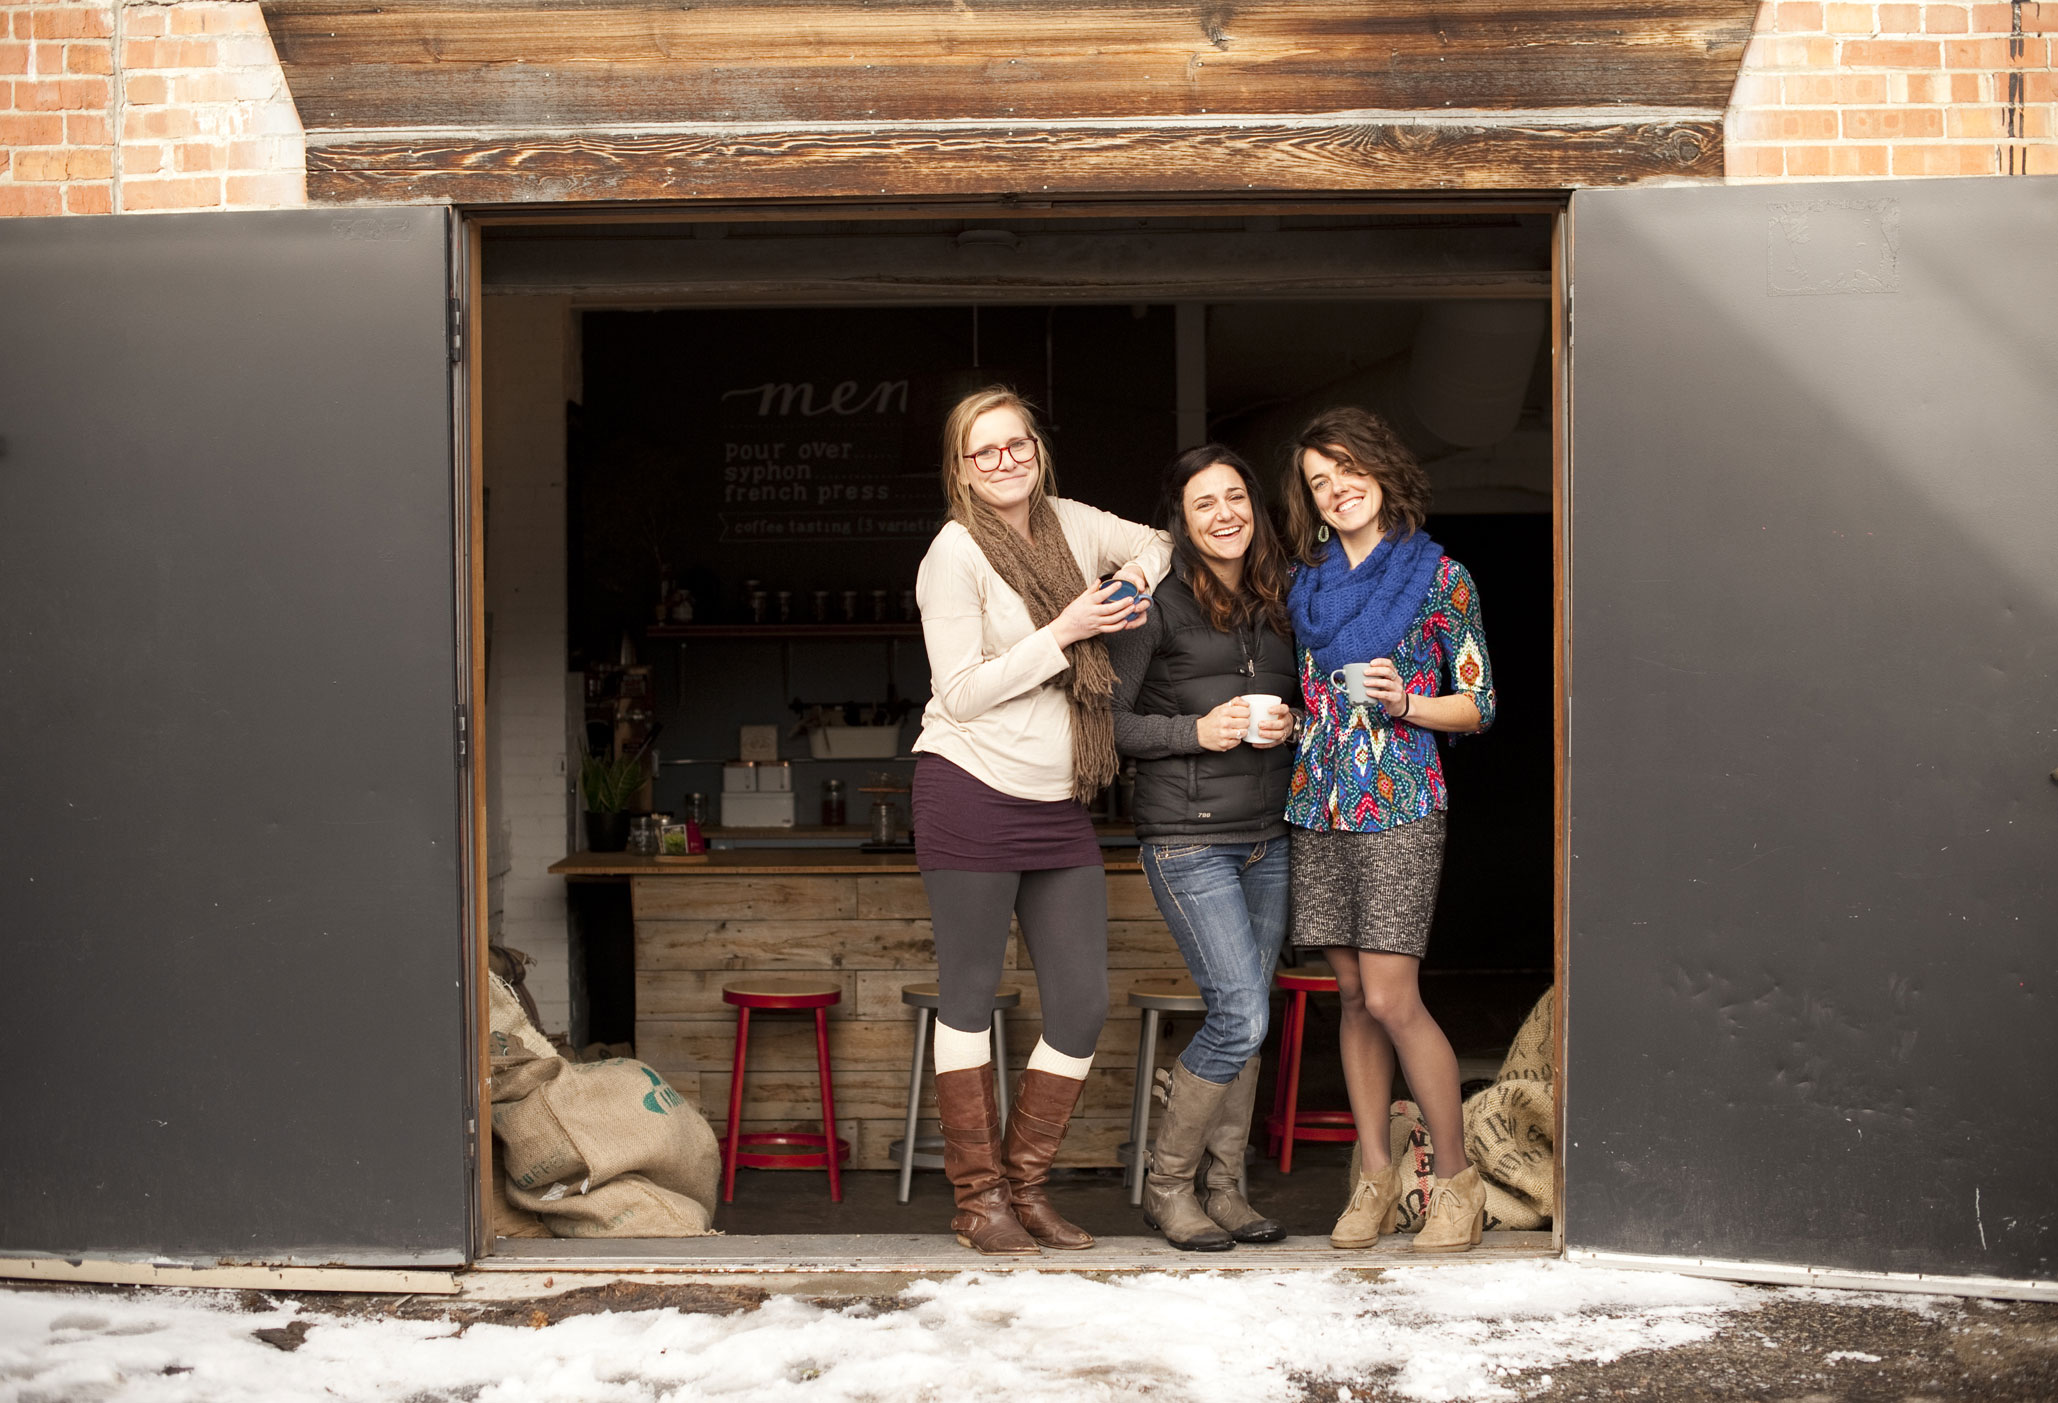 Little Red Wagon Coffee Roasters owners Natalie Van Dusen (center) and Kelly Meredith (right) pictured in their alley entrance with LRWCR's marketing guru Deejay Newell